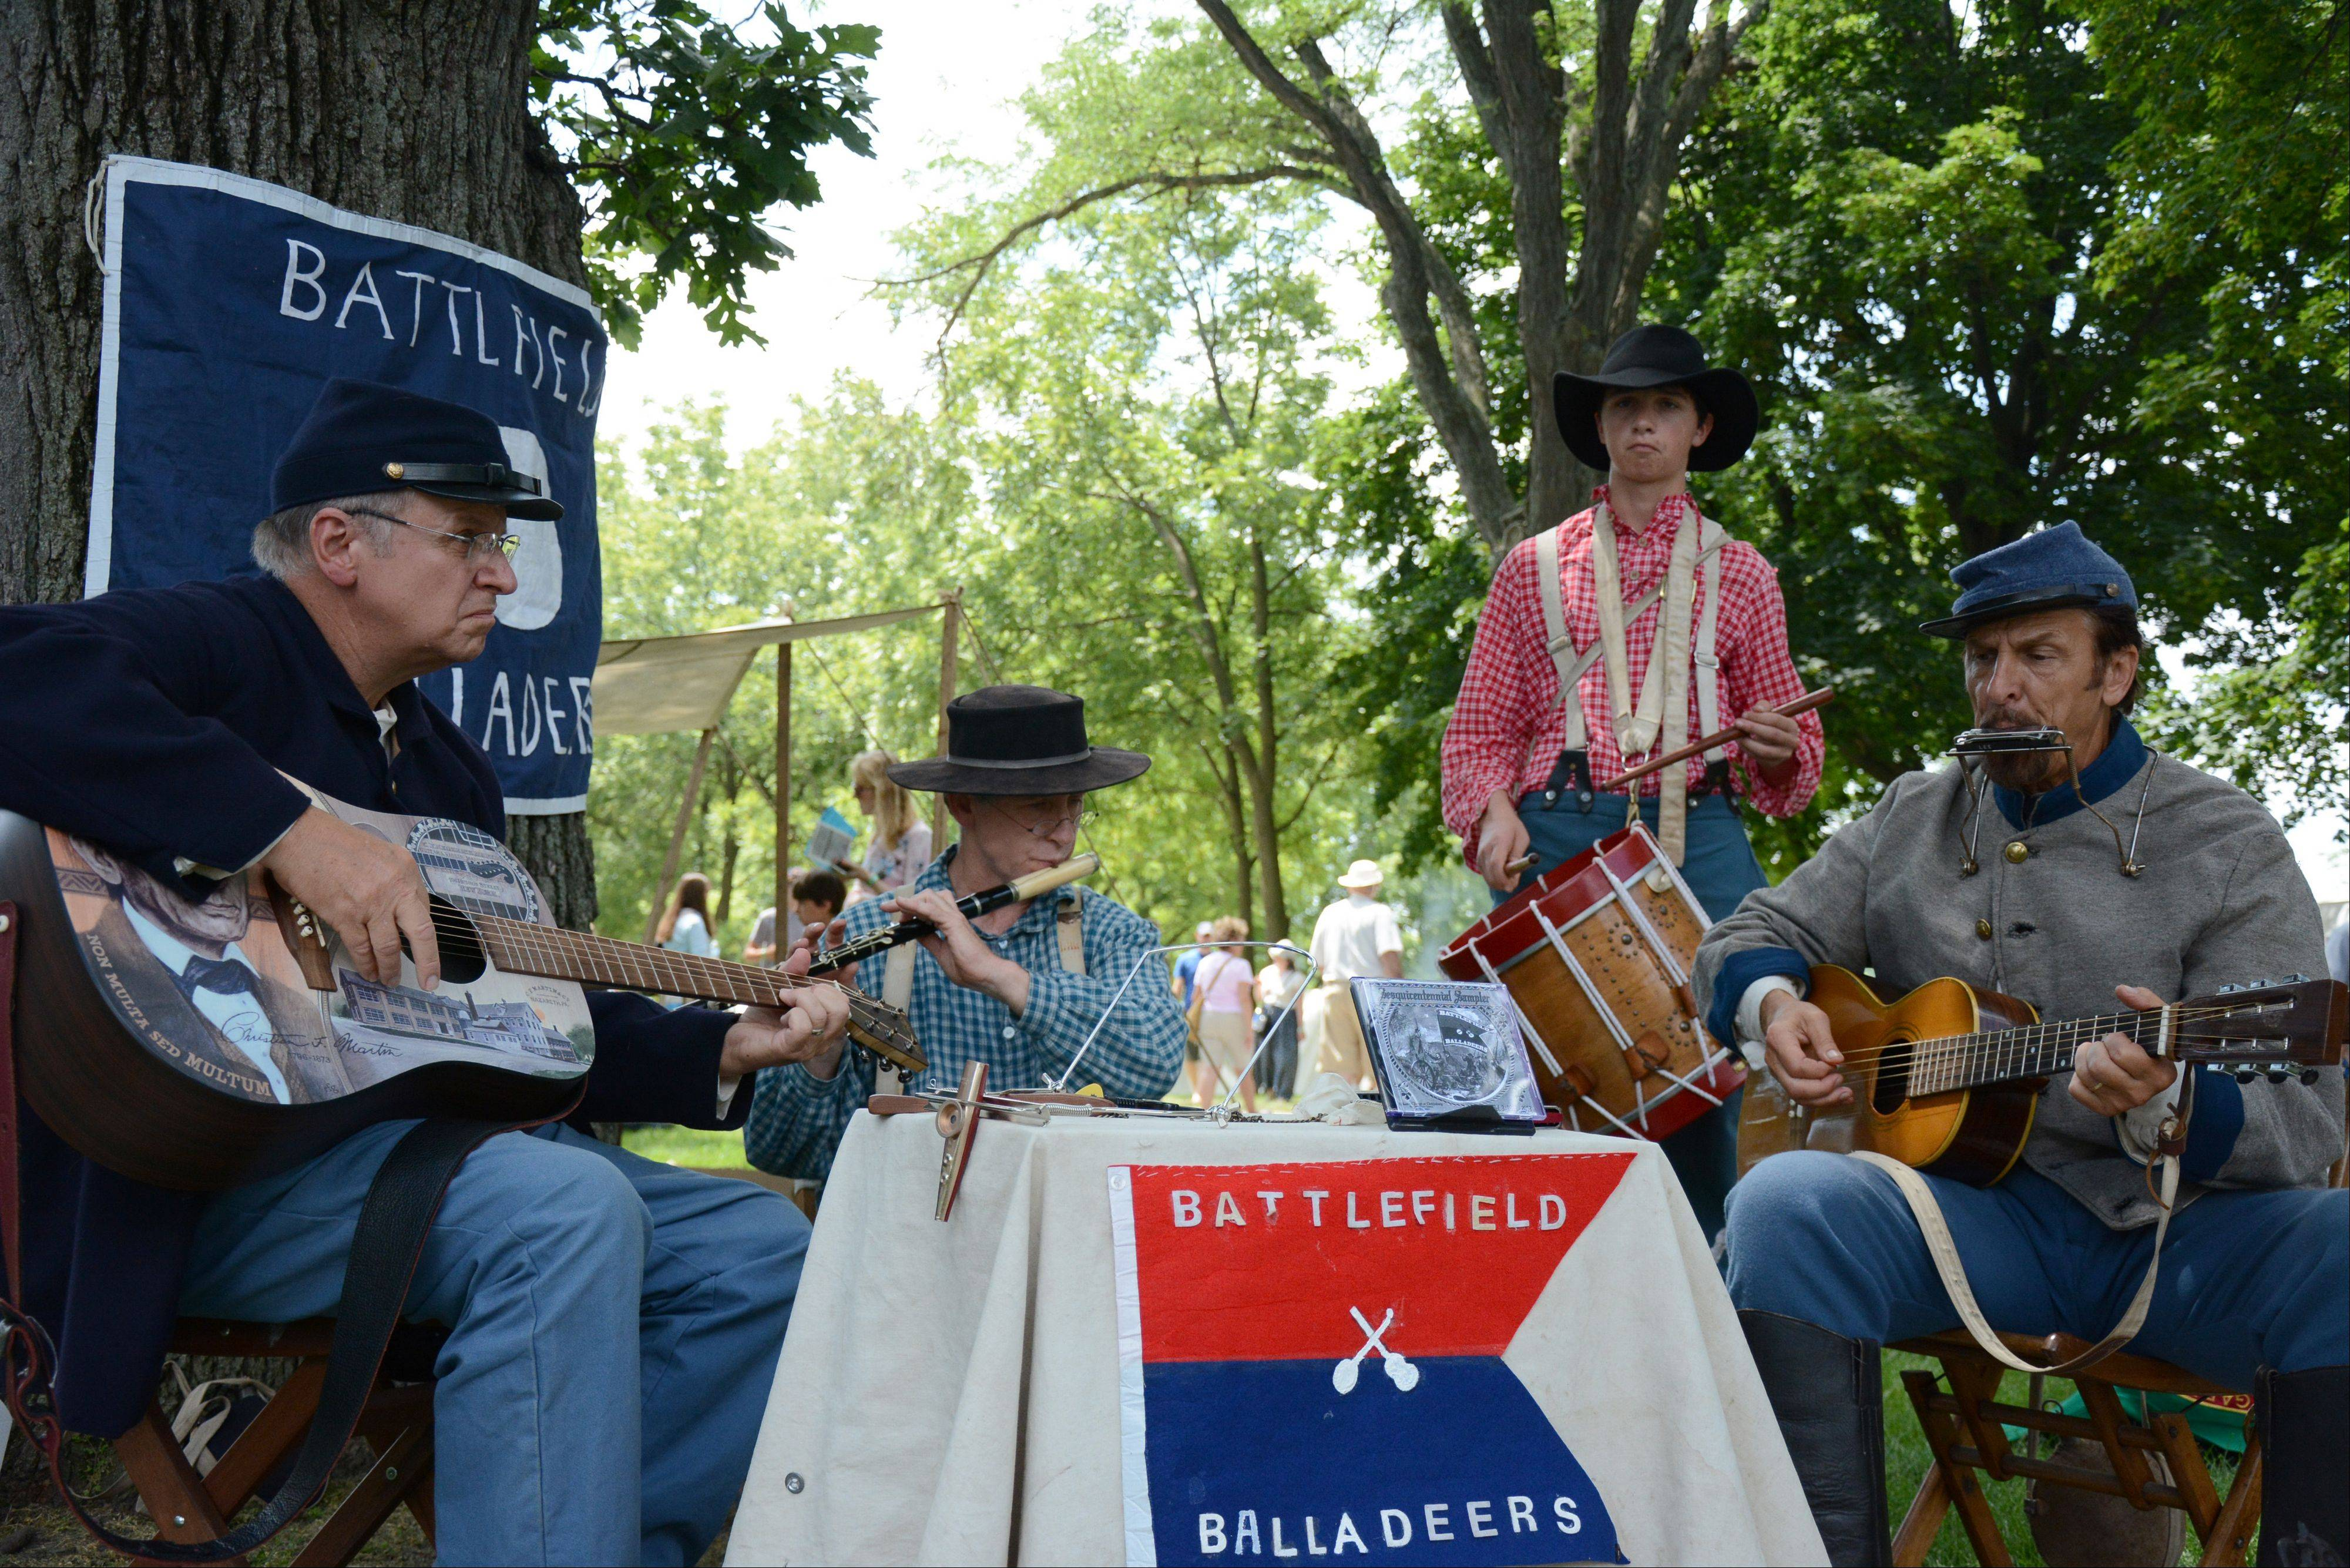 From left to right, Jim Schranz, of Lindenhurst, Steve Smunt, of St. Charles, Mike Novak, of Crystal Lake, and Dave Corbett, of Buffalo Grove, play period music Sunday during Civil War Days at the Lakewood Forest Preserve near Wauconda.